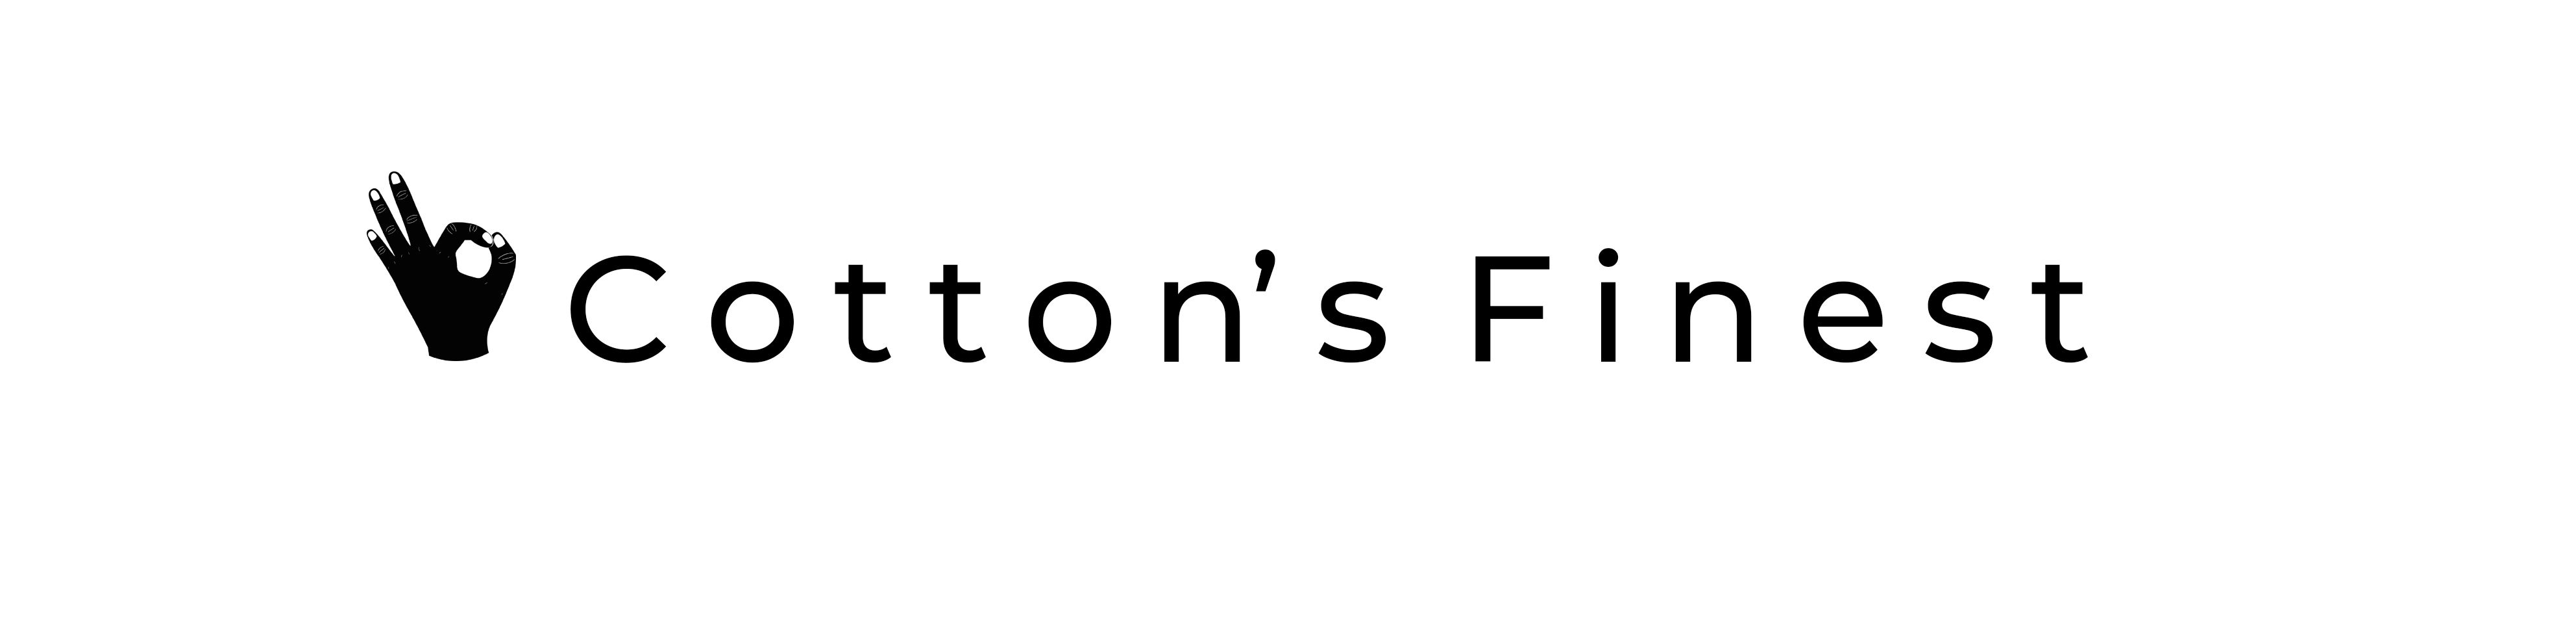 Cotton's Finest logo